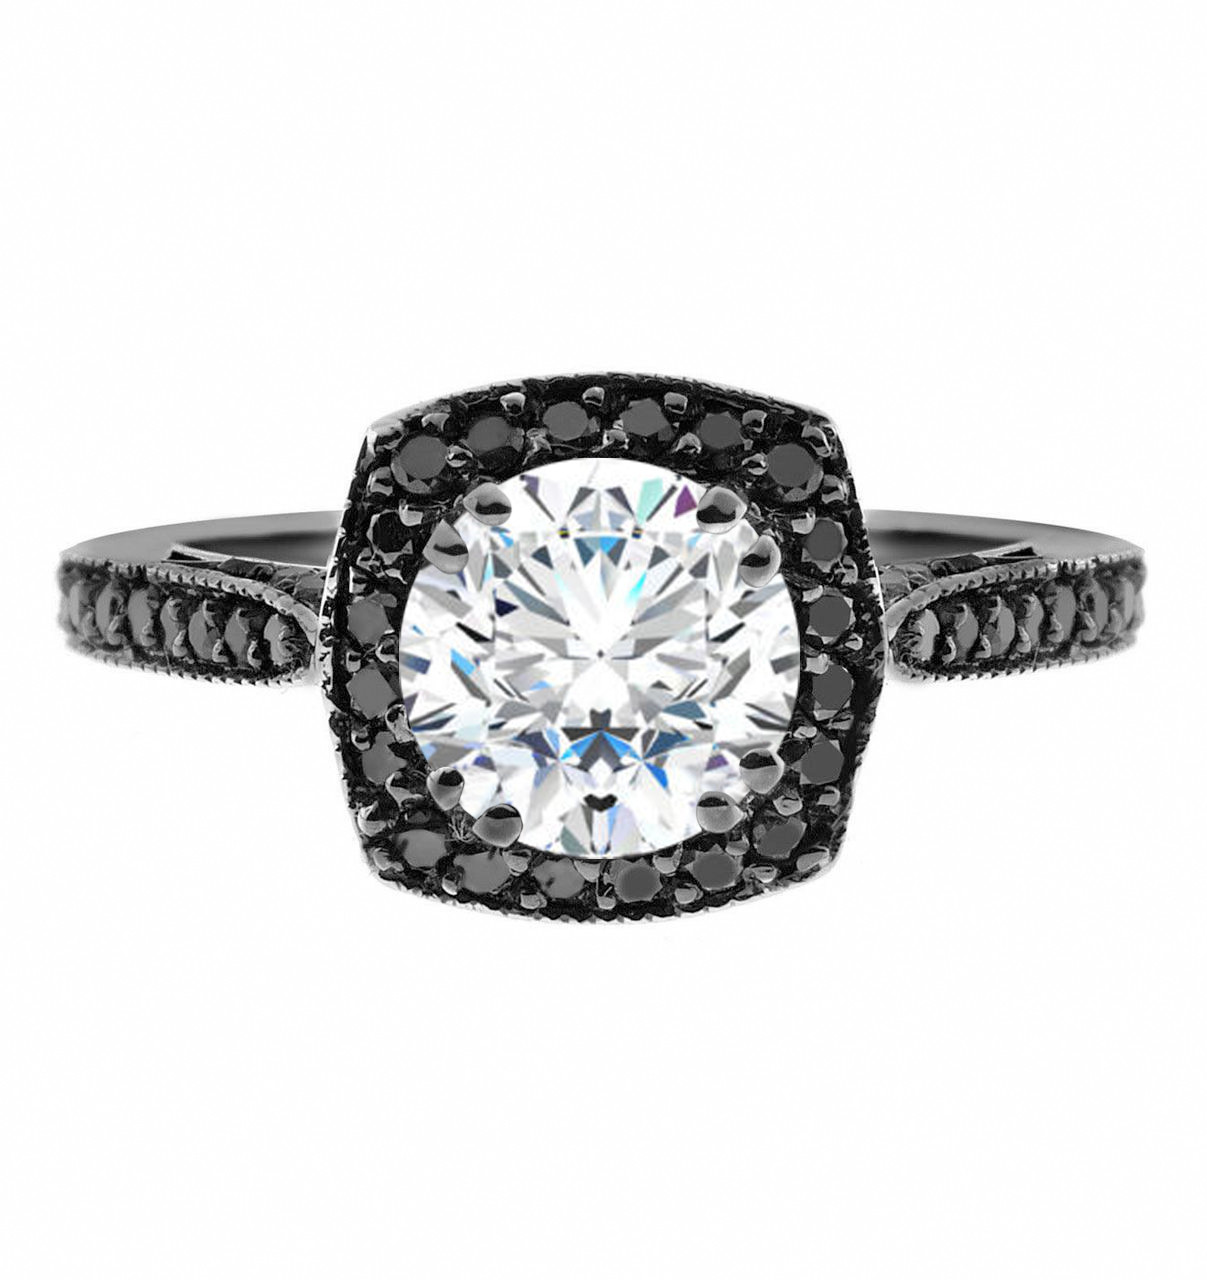 deco moissanite kydx colvard products rings fullxfull il al art wedding ring white gold charles engagement